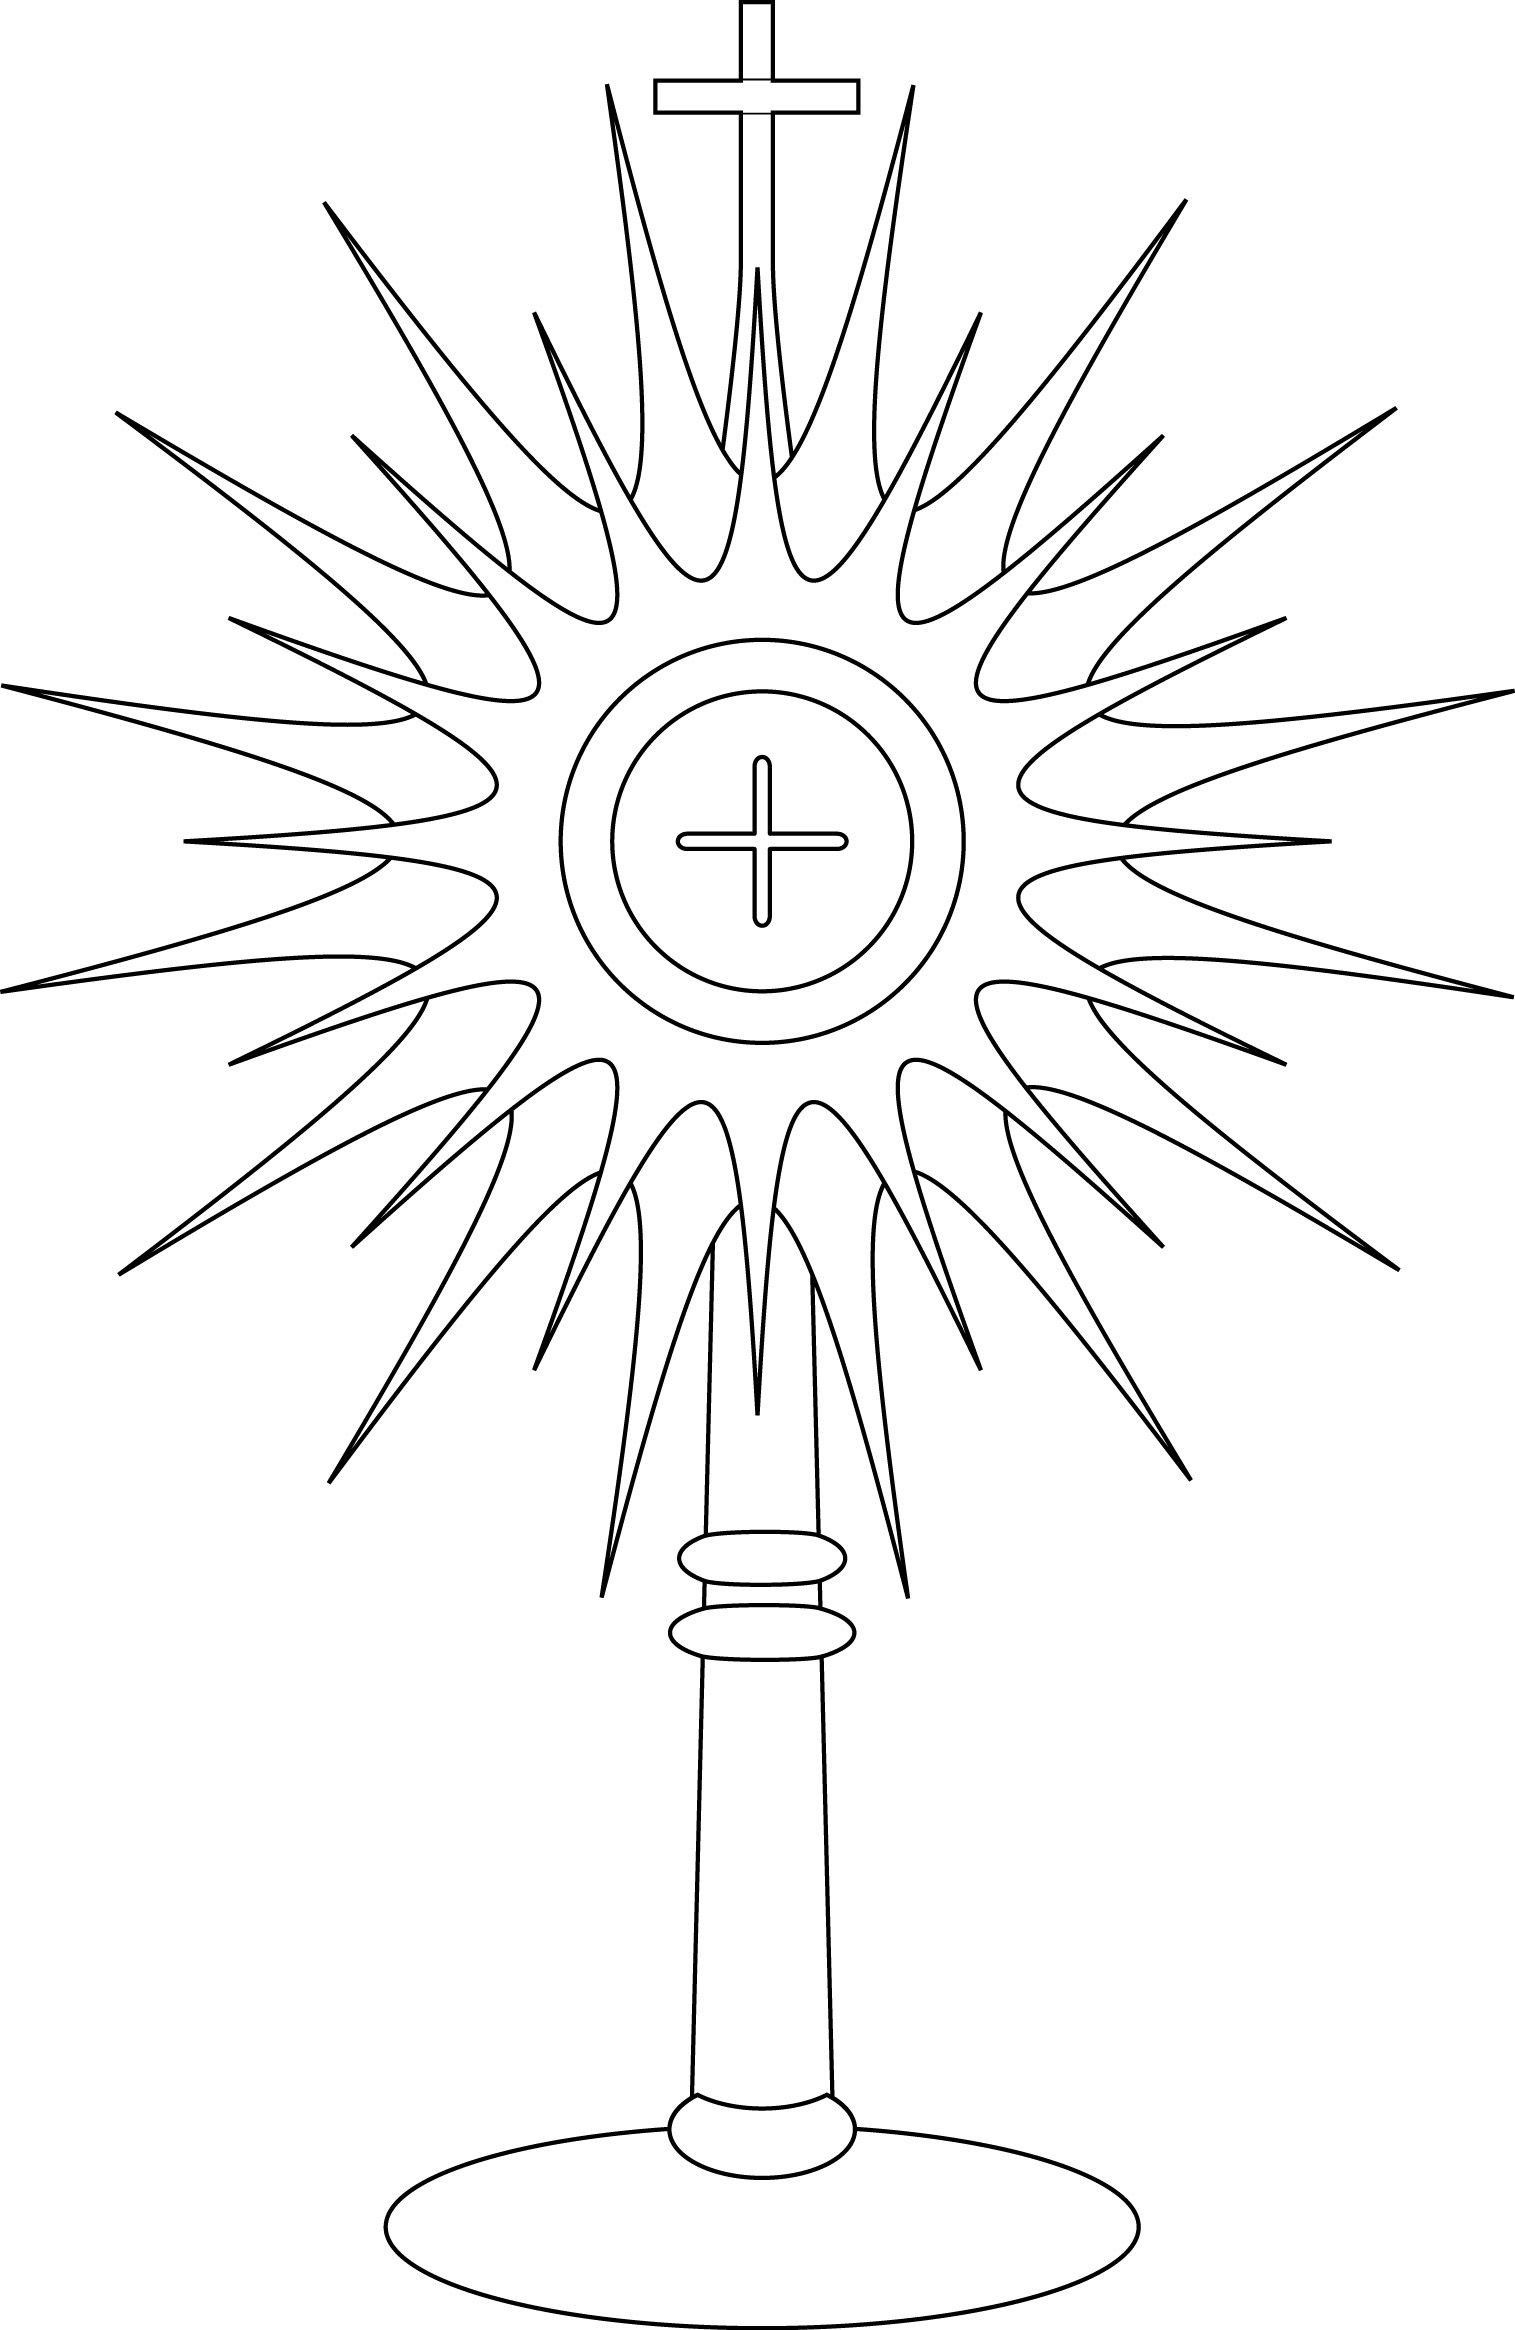 Jesus Ascension Coloring Page Awesome Monstrance Coloring Page